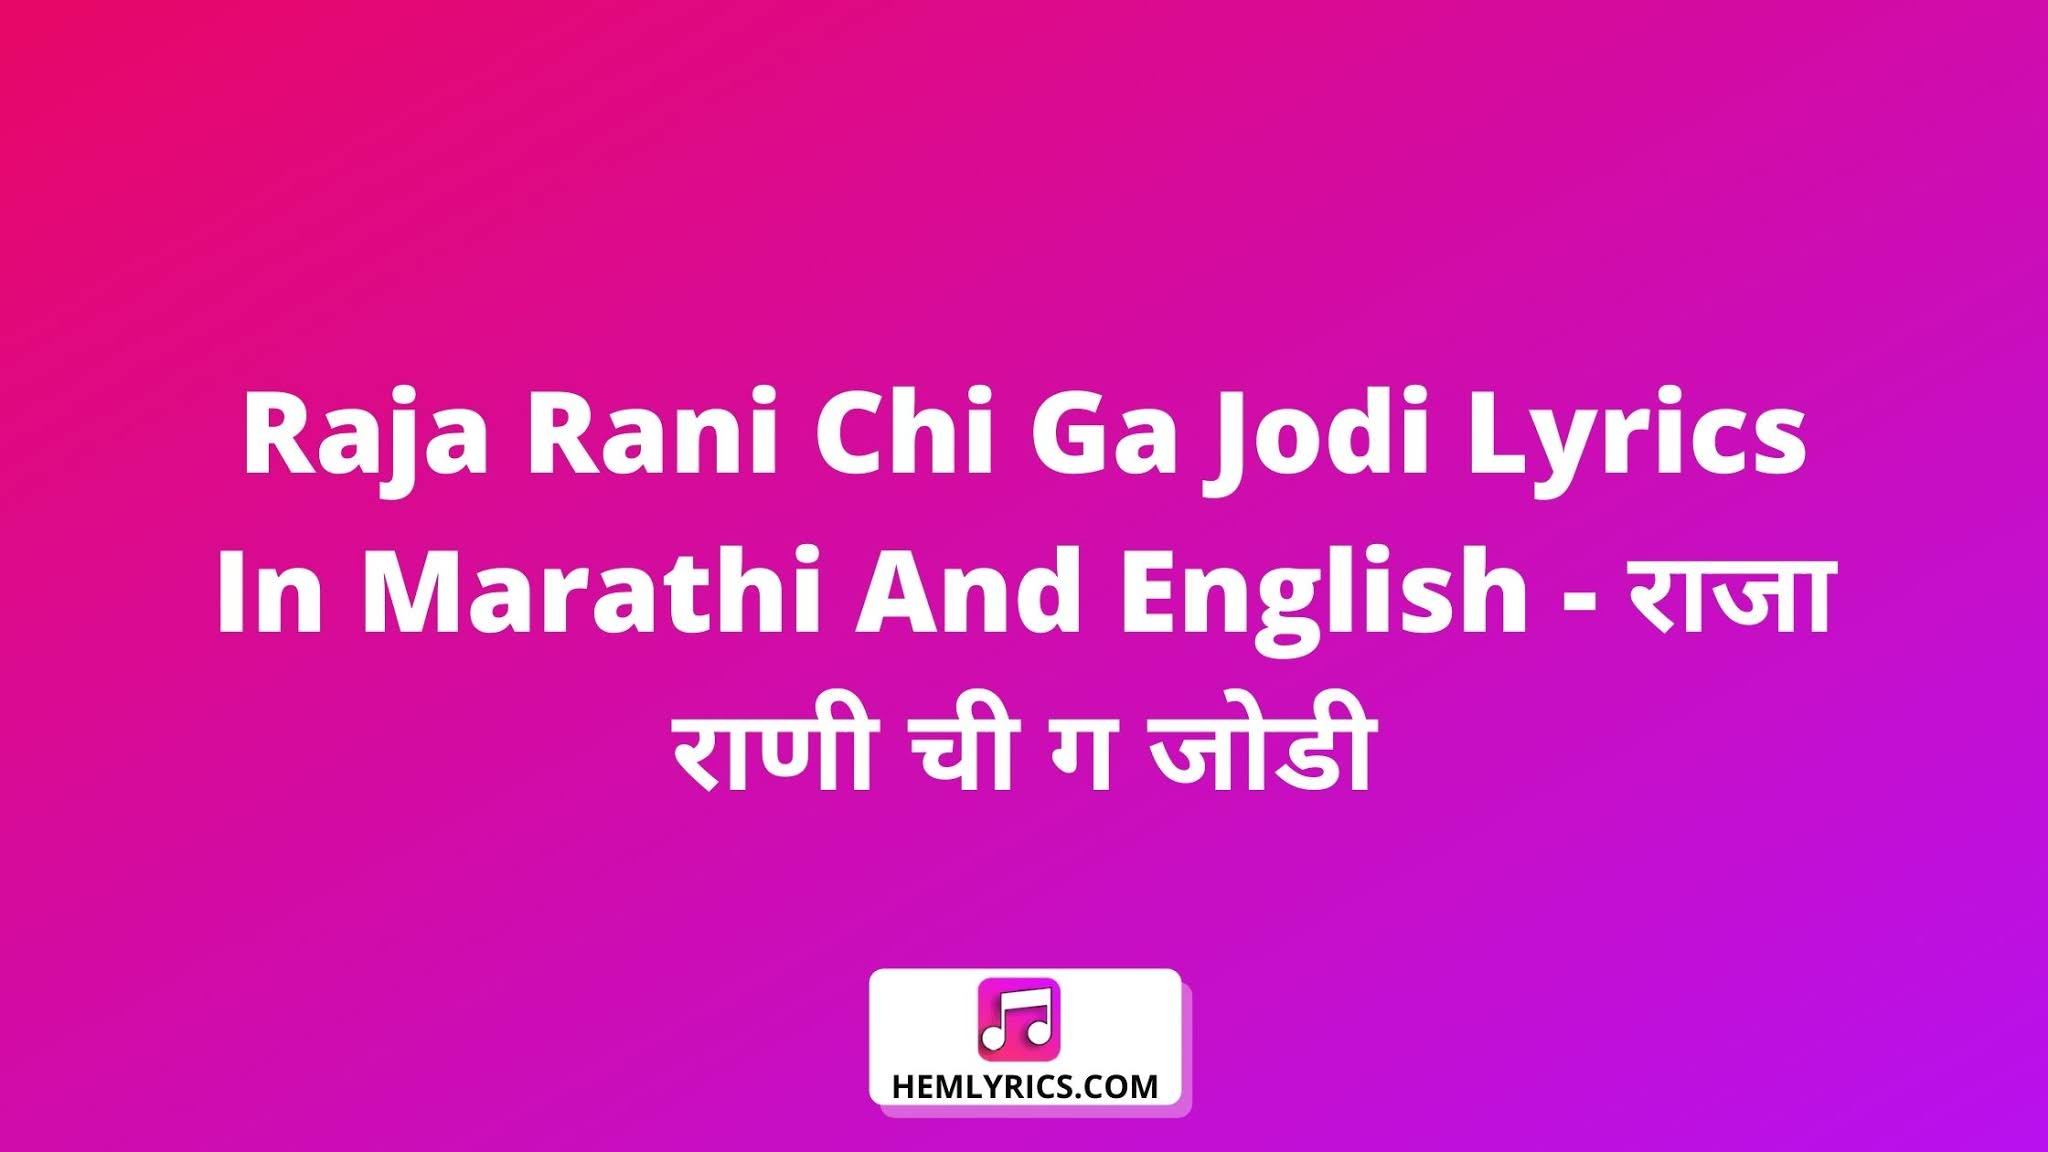 Raja Rani Chi Ga Jodi Lyrics In Marathi And English - राजा राणी ची ग जोडी